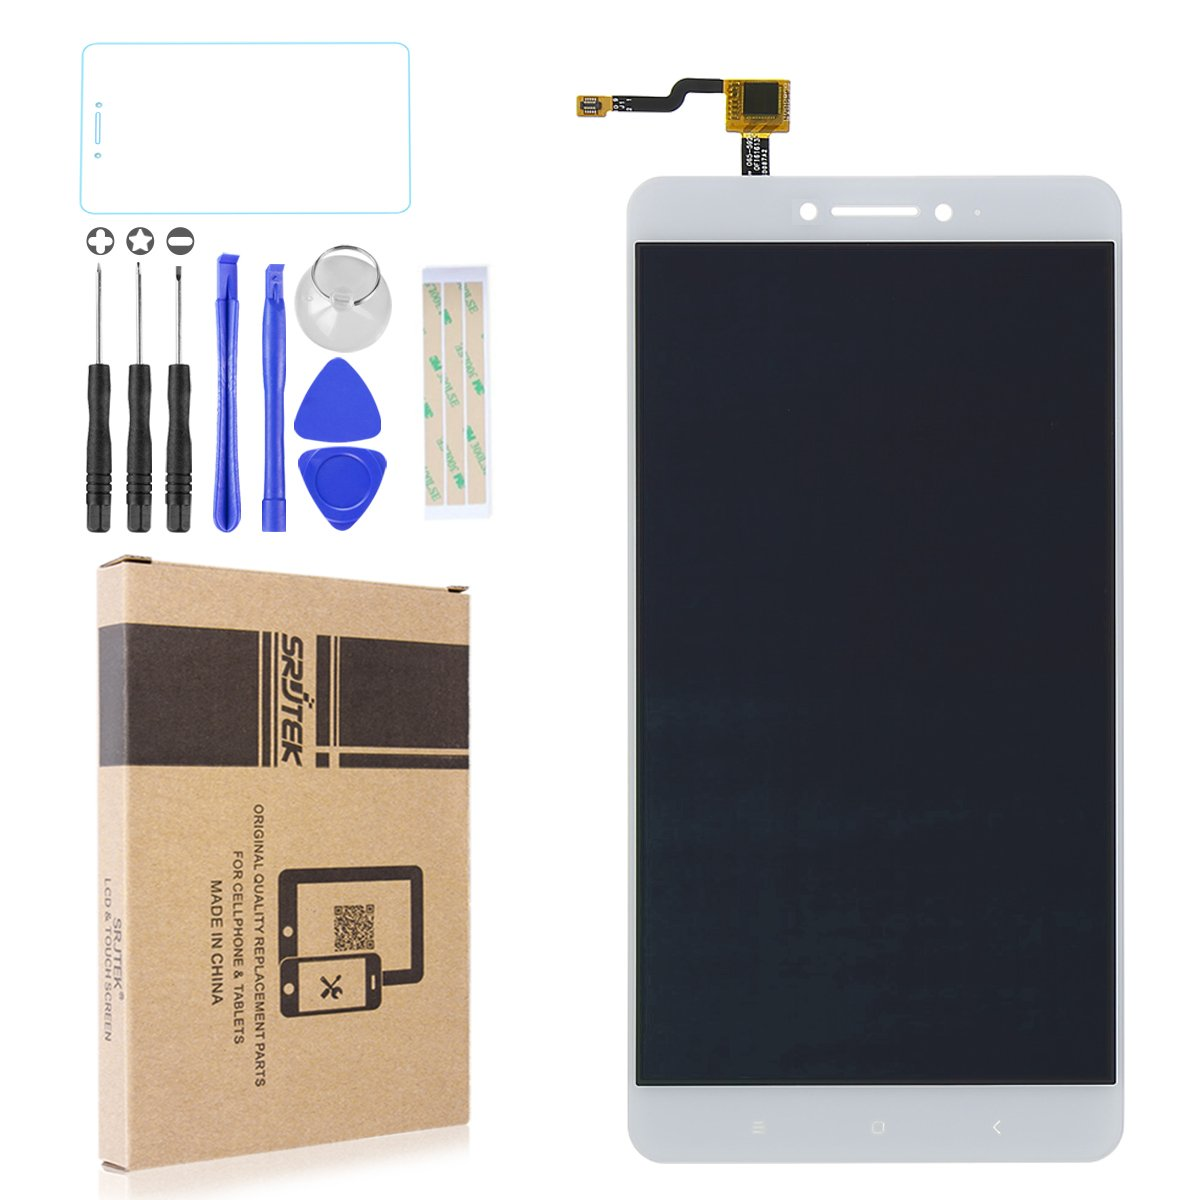 Srjtek Parts Replacement LCD Display Screen Assembly for Xiaomi Mi Max,with 6.44'' Touch Screen Digitizer for Repairing